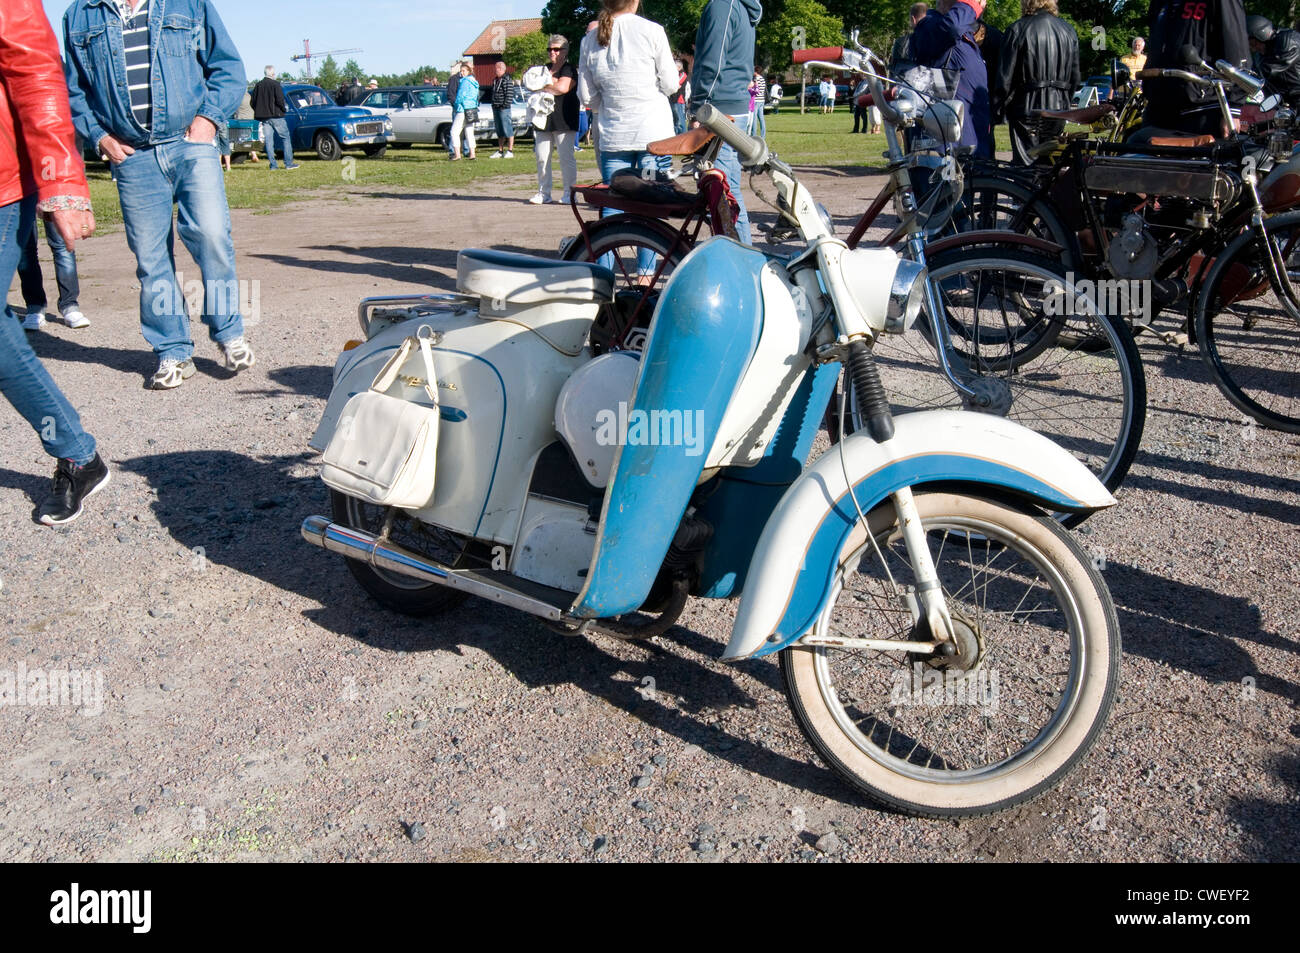 husqvarna scooter motorcycle motorcycles motorbike motorbikes motor bike bikes cycles moped old classic swedish - Stock Image